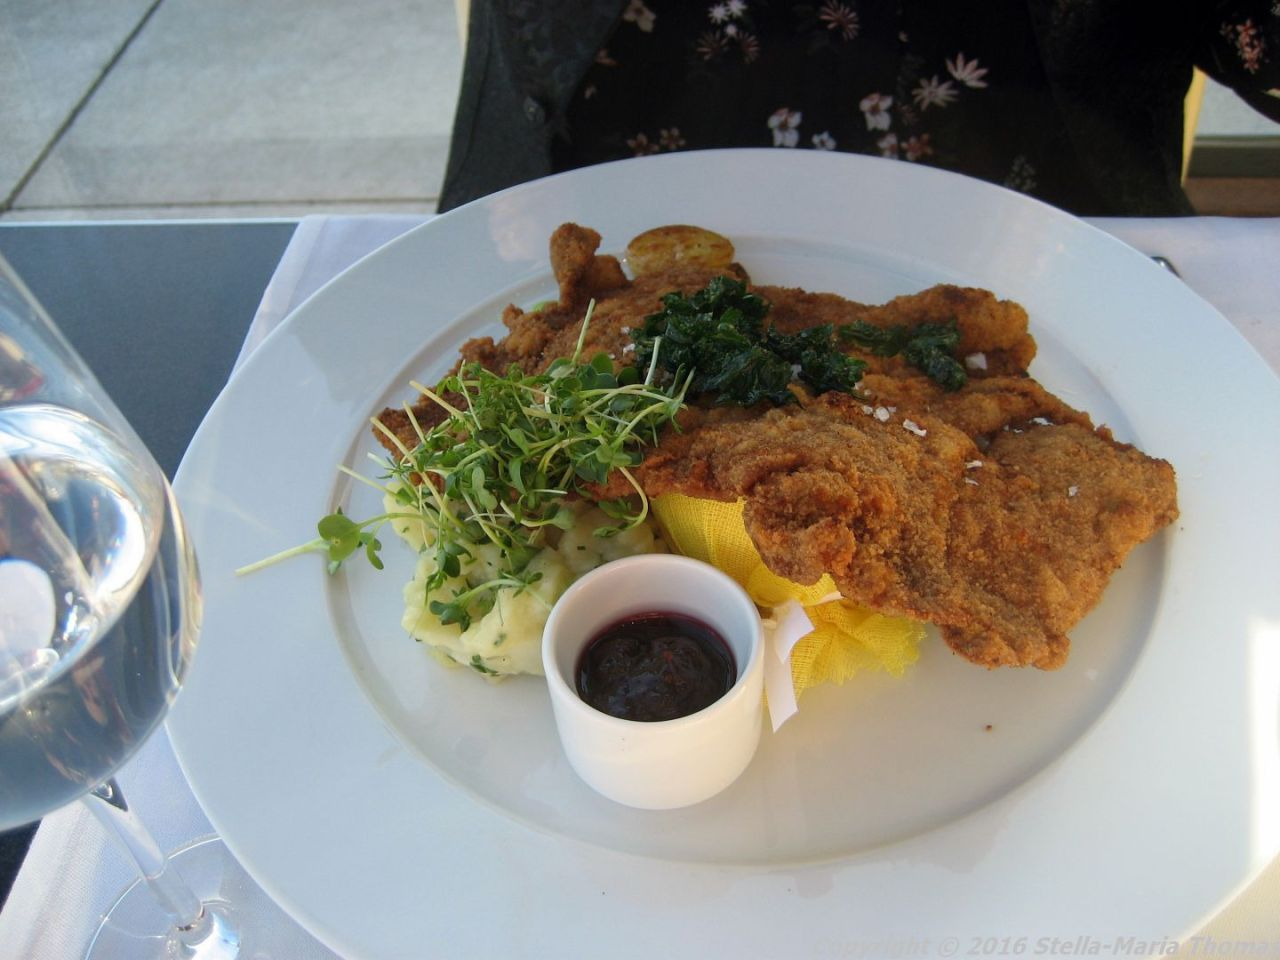 dachgarten-restaurant-reichstag-breaded-veal-schnitzel-potato-leek-salad-roasted-la-ratte-potatoes-wild-cranberries-berlin-007